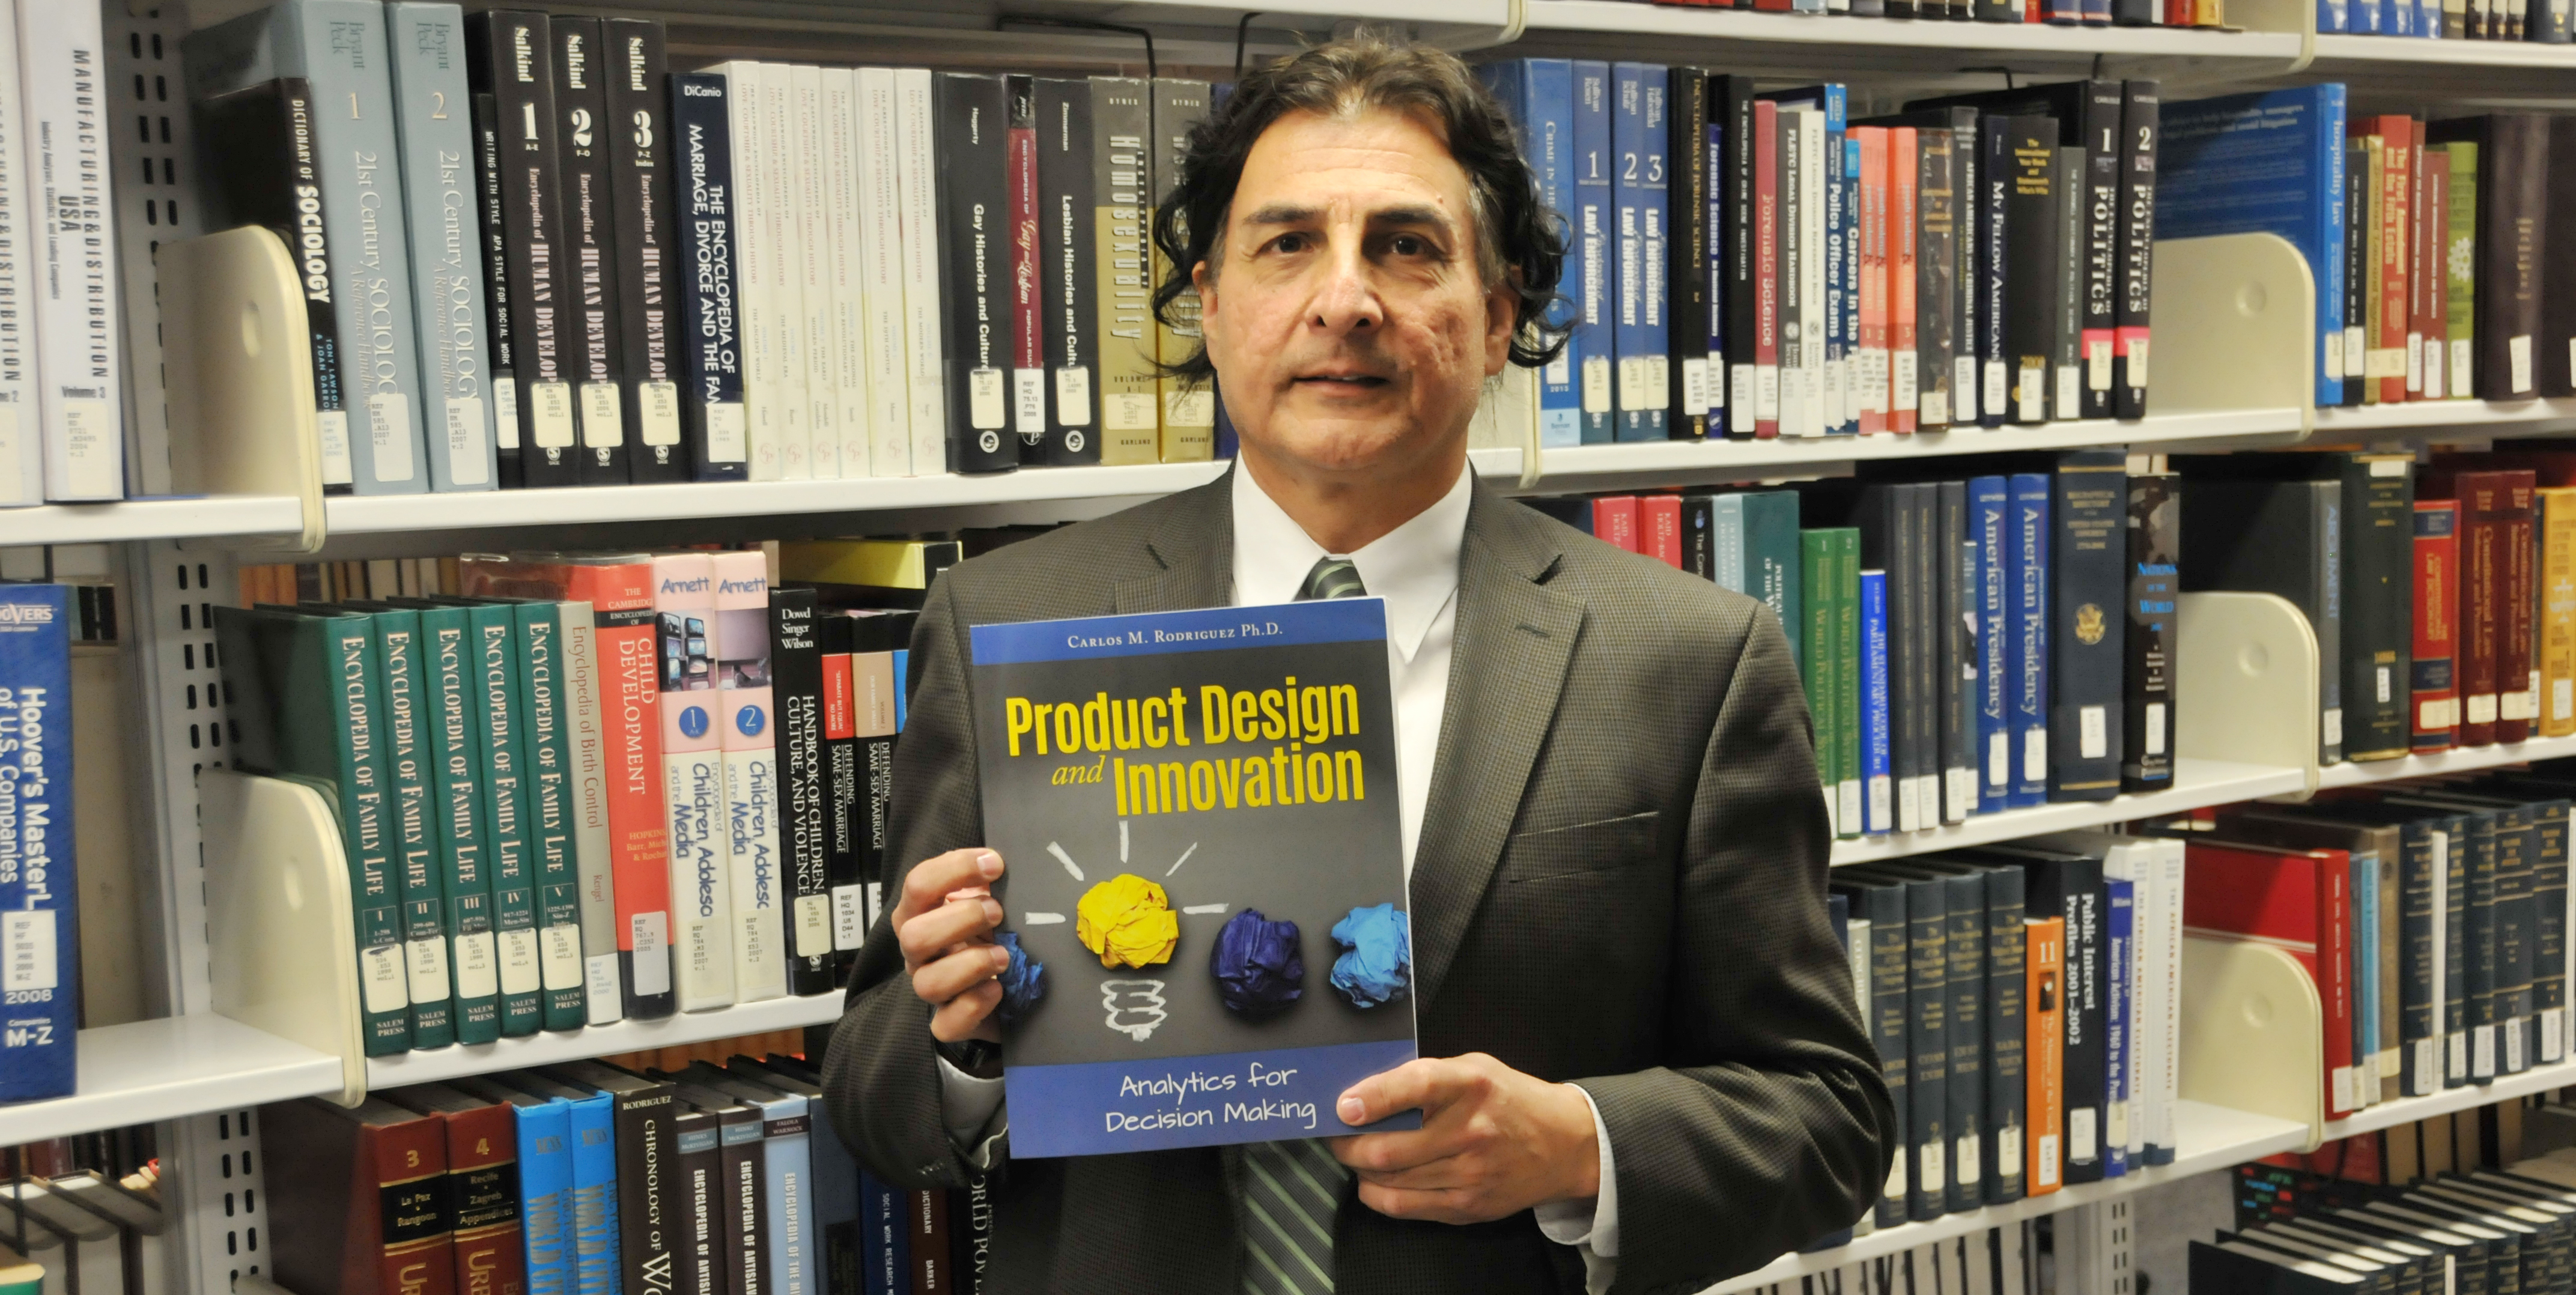 The DSU College of Business' Dr. Carlos Rodriguez has authored a new book on product design and innovation that reflects the intellectual fruits that can be expected from the COB's Center for the Study of Innovative Management, of which he is the director.